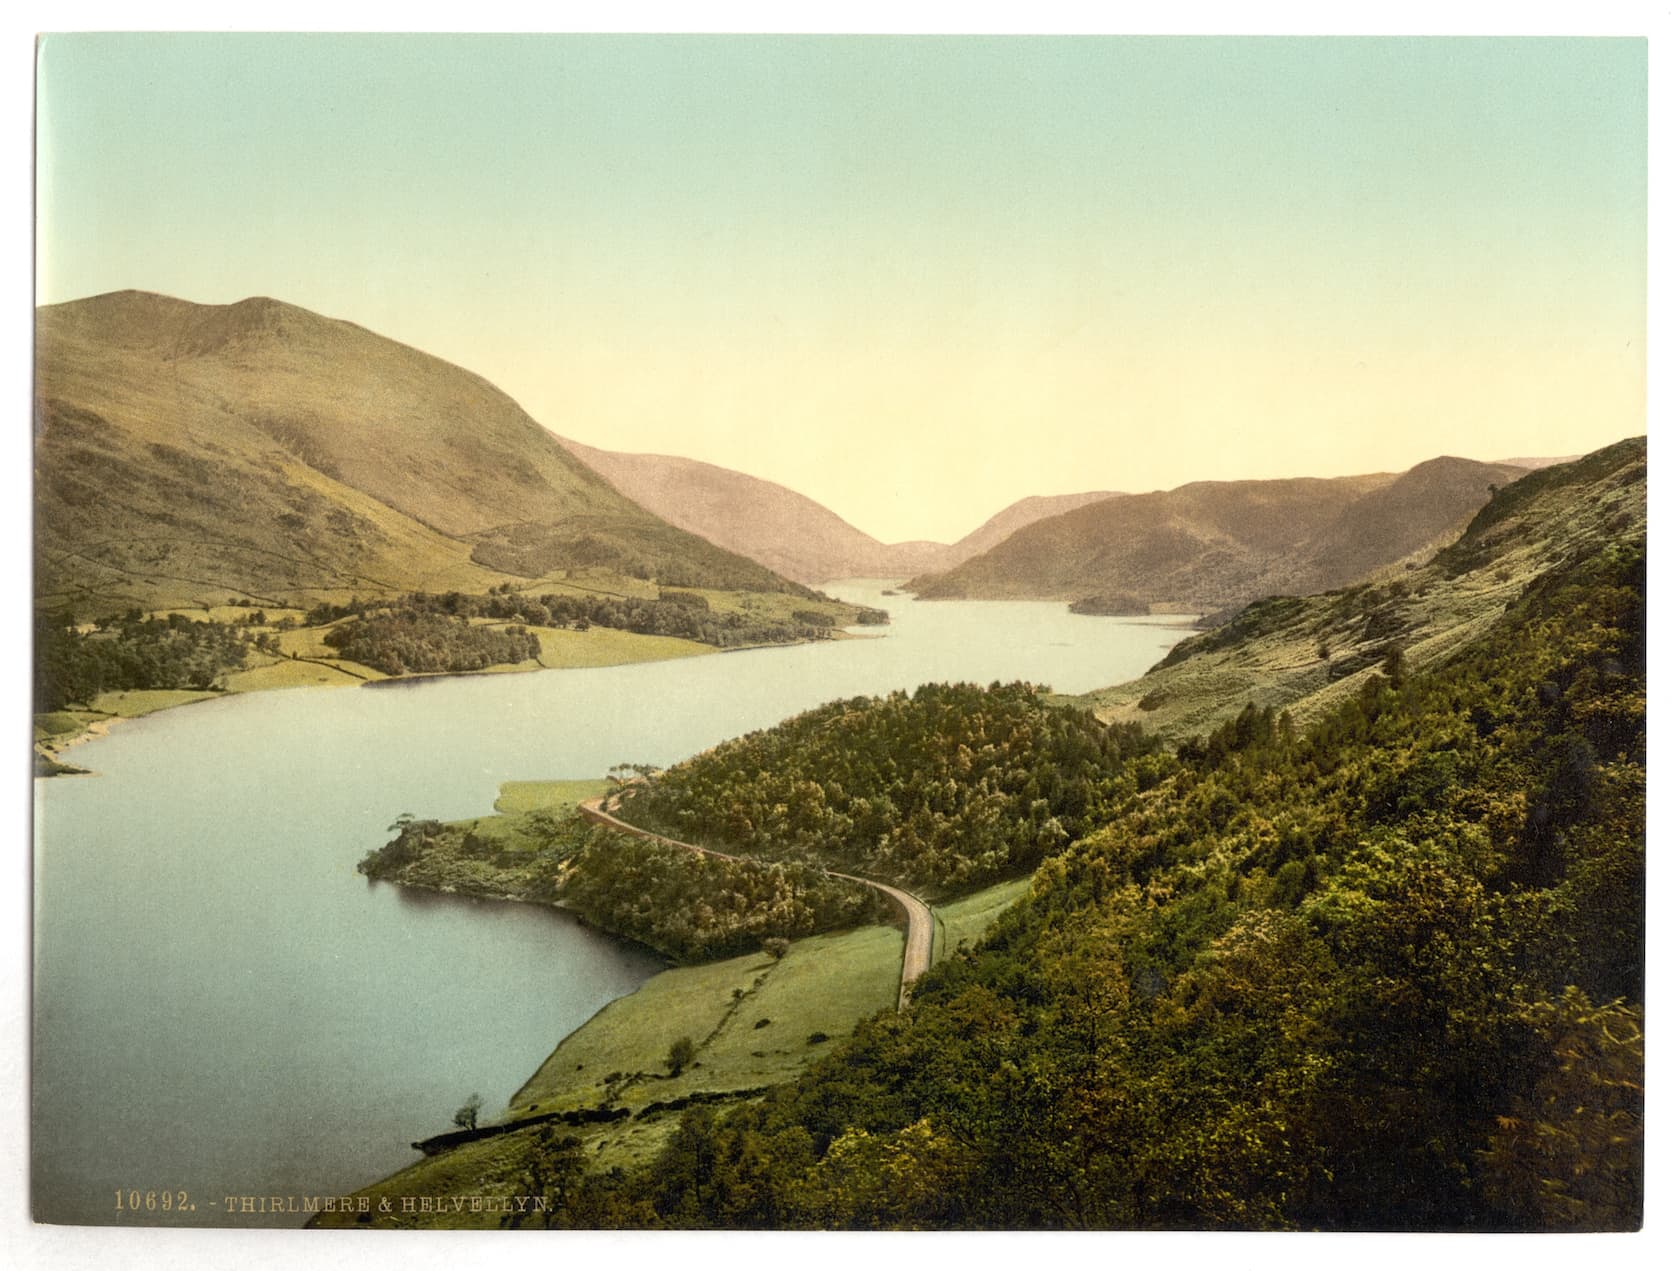 Thirlmere, painted in the late 19th century